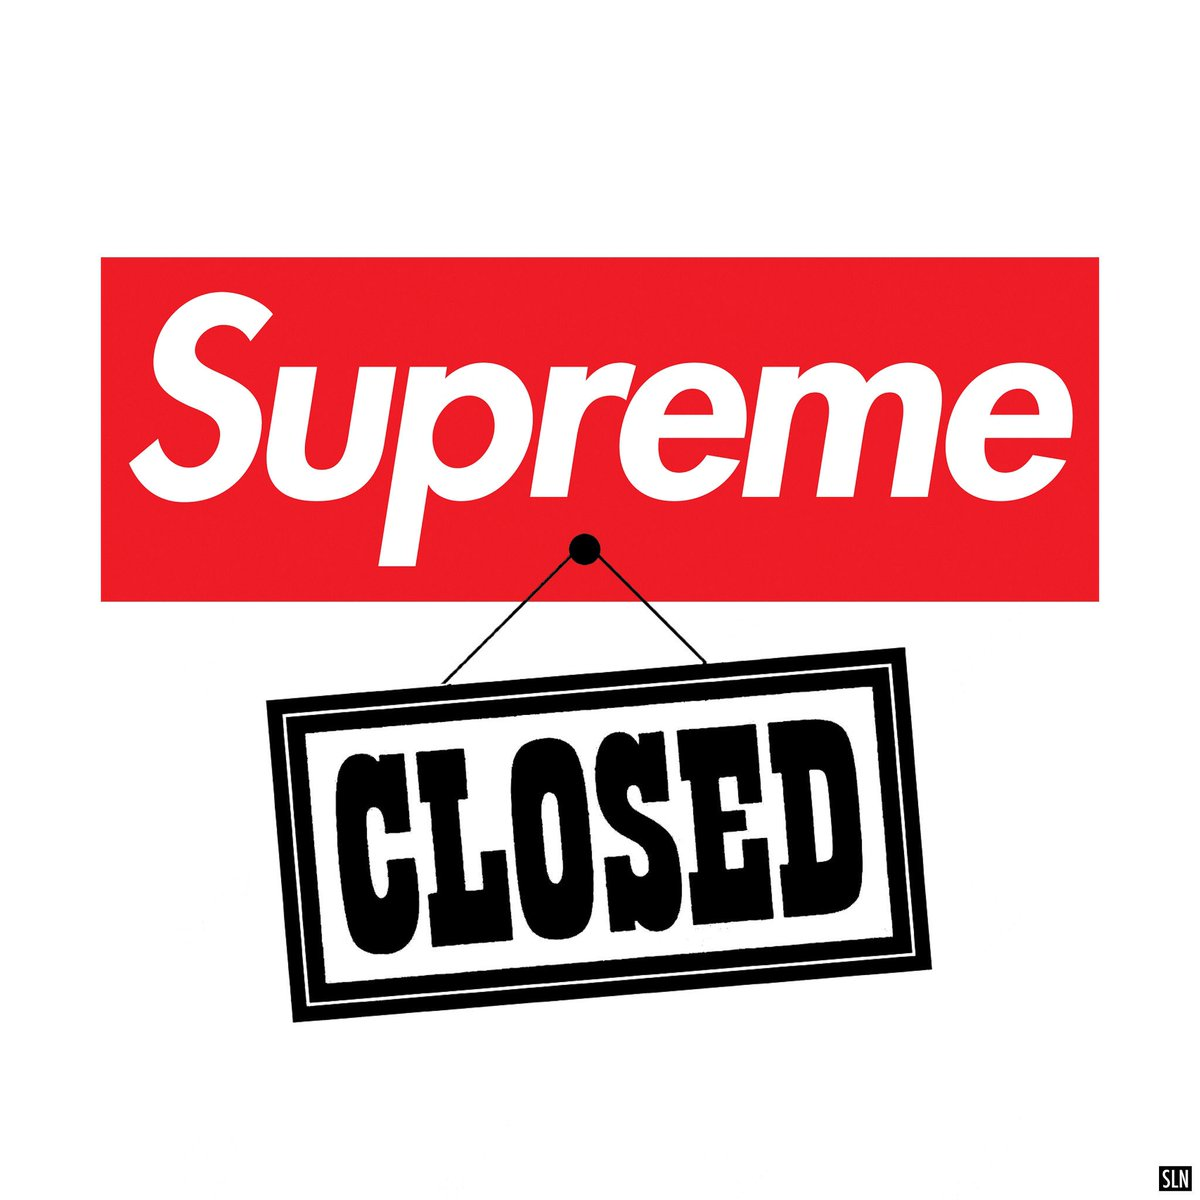 cc83a200e1fd With the Supreme SS19 season now officially over and the webstore closed  til next season What are your overall thoughts on this season?